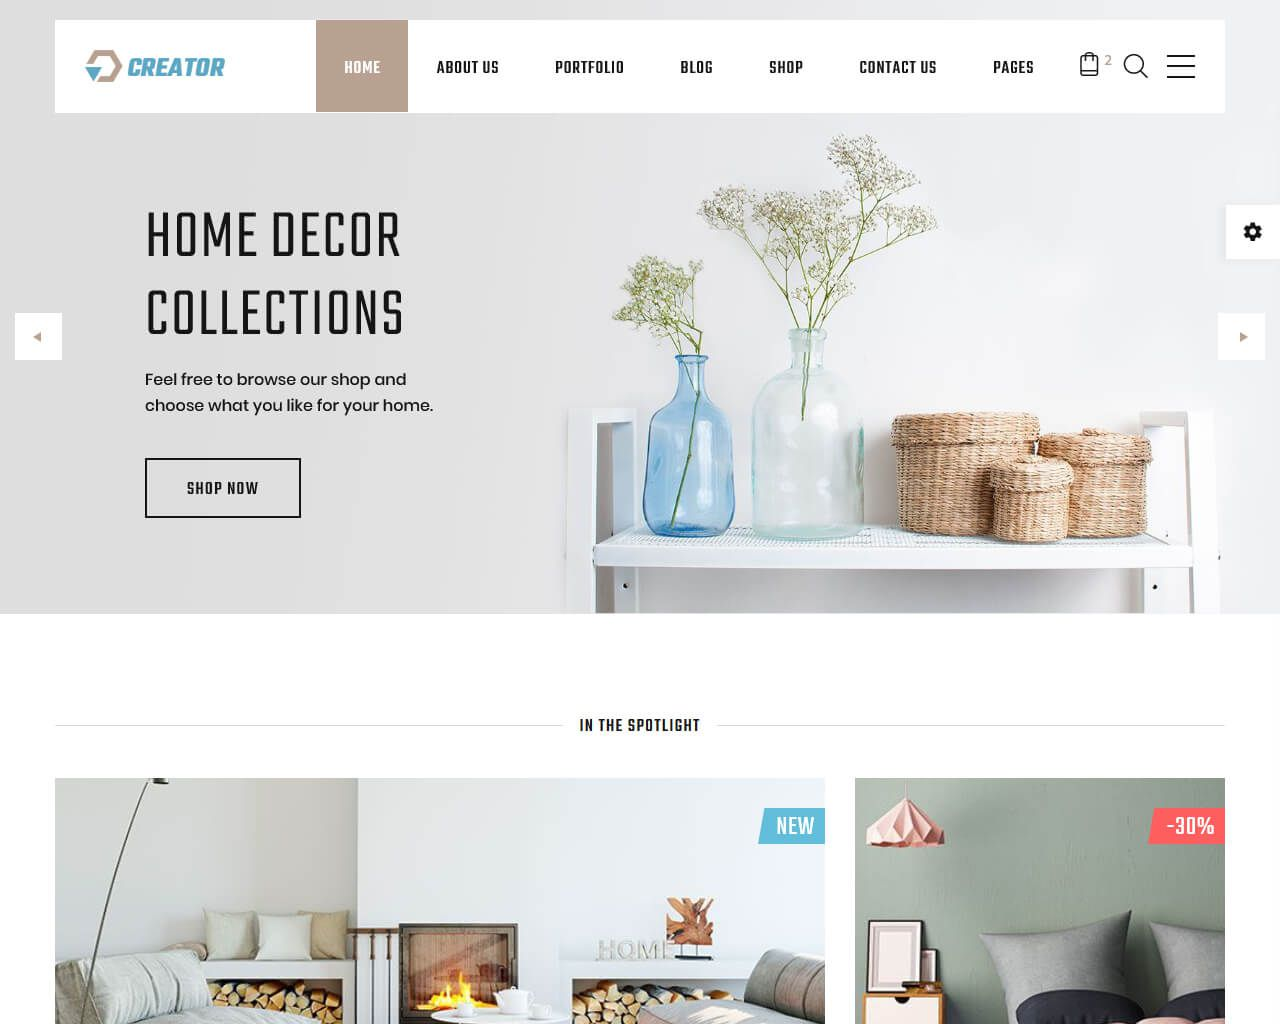 001 Breathtaking Interior Design Website Template High Resolution  Templates Company Free Download HtmlFull